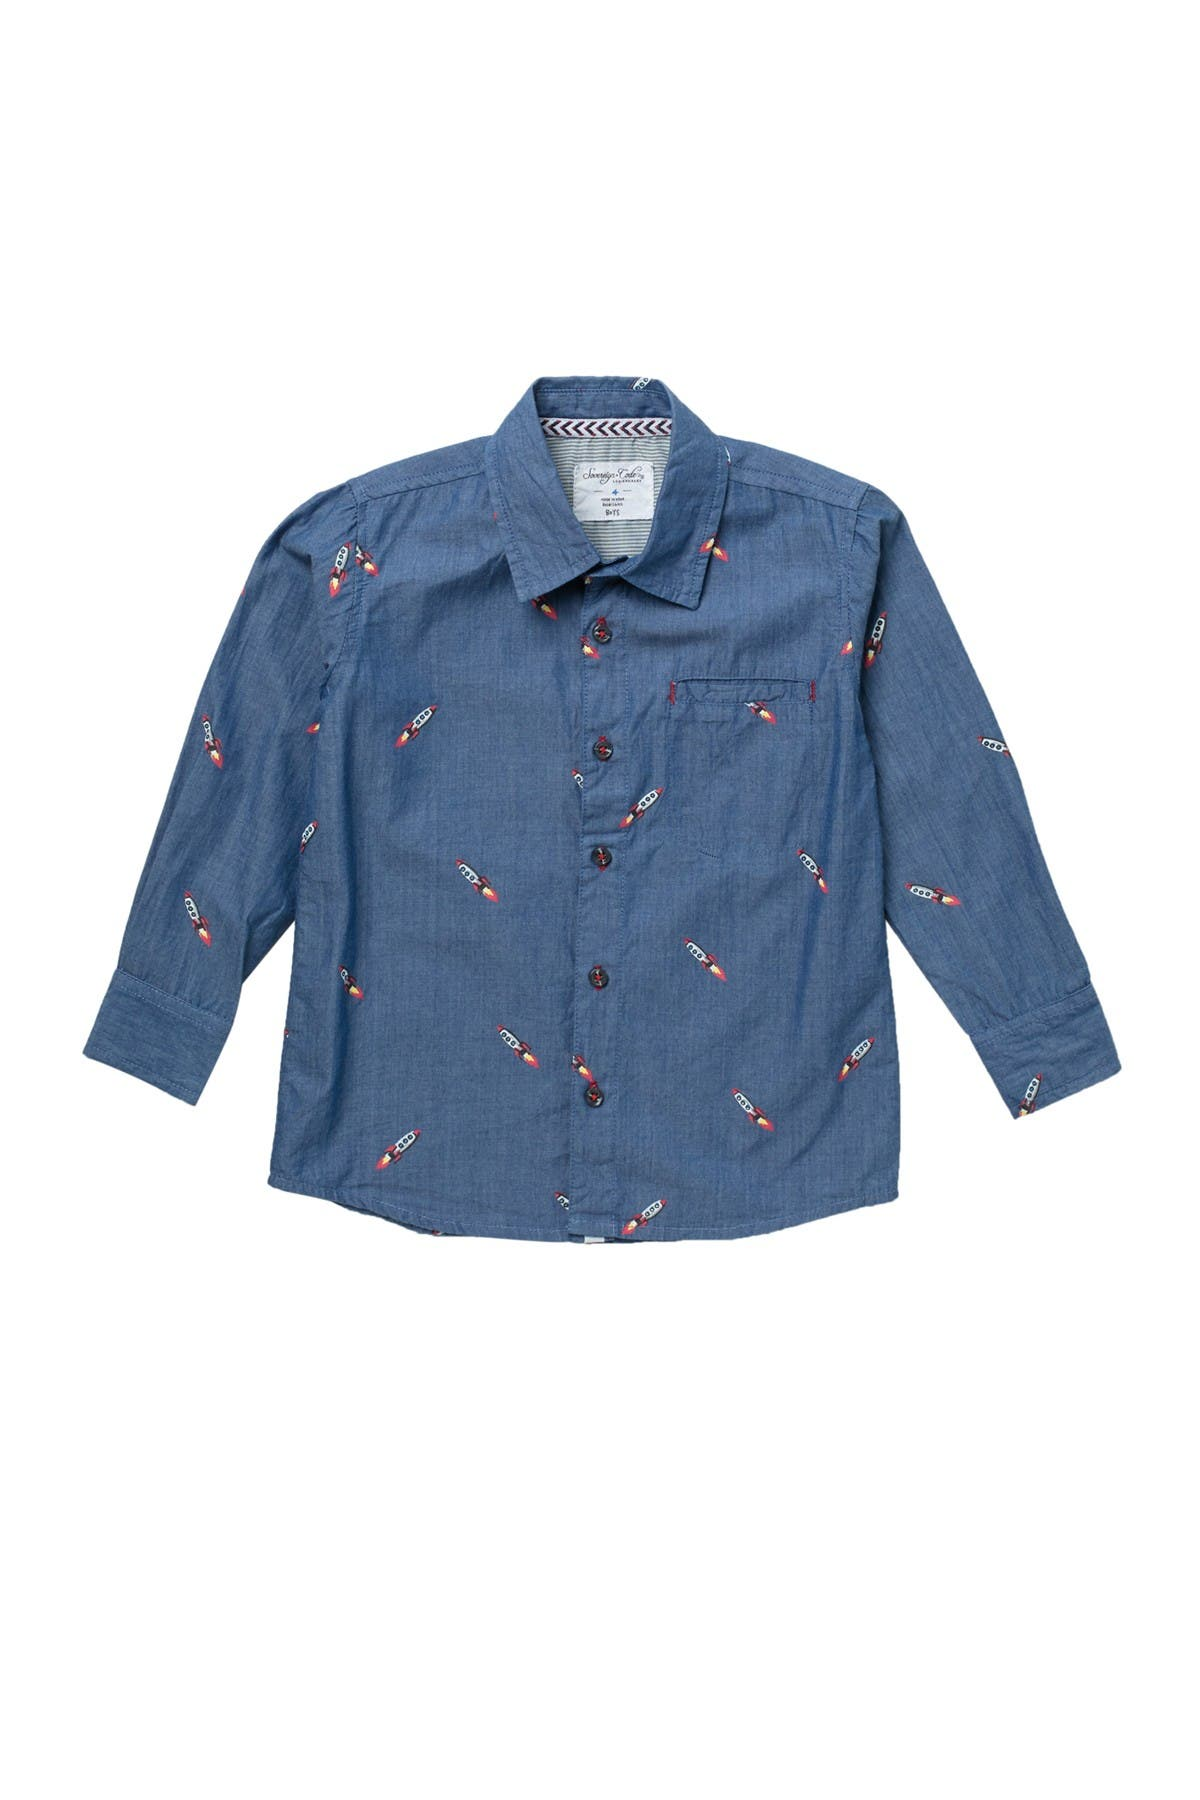 Image of Sovereign Code Piccolo Rocket Embroidered Button Up Shirt